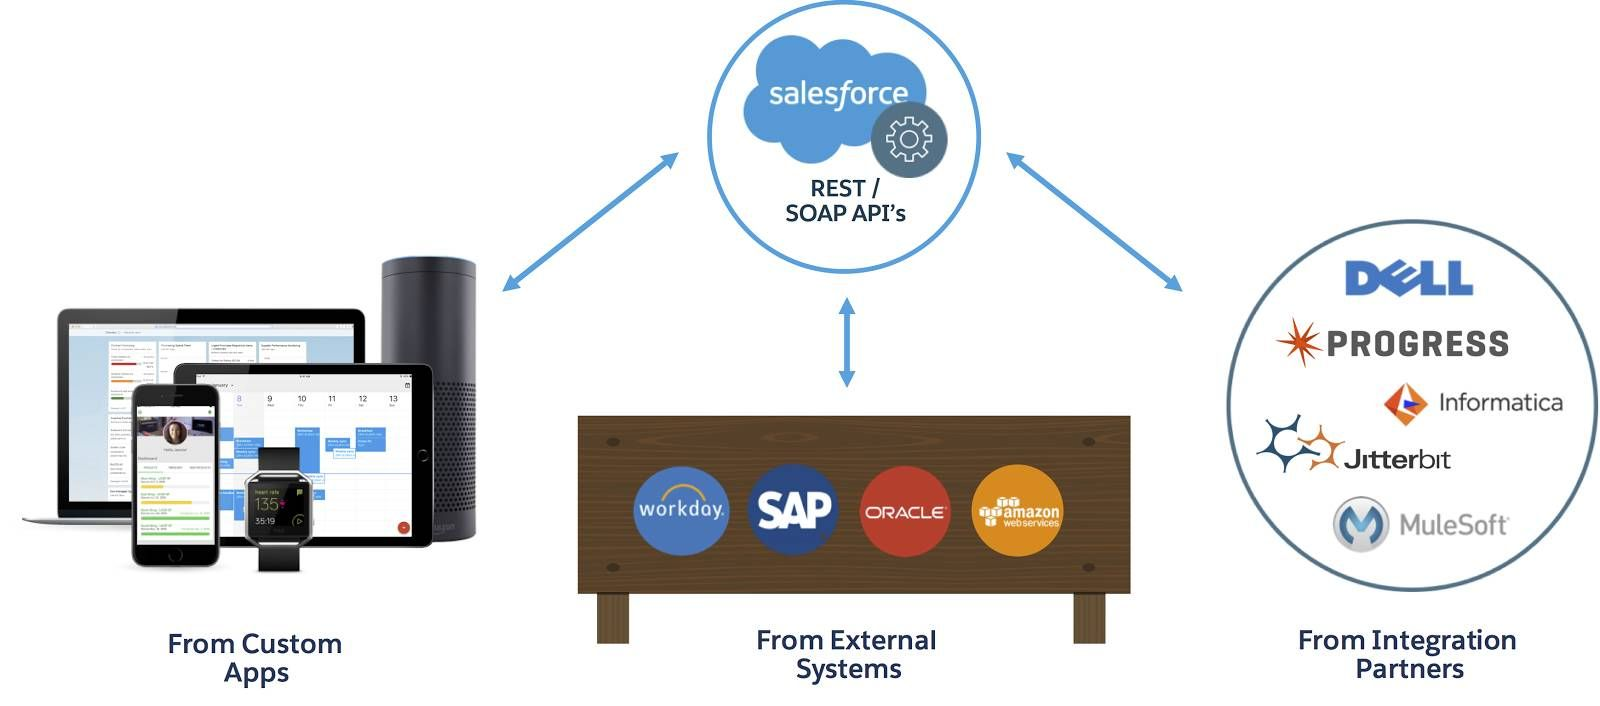 An infographic showing Salesforce REST and SOAP APIs connected to